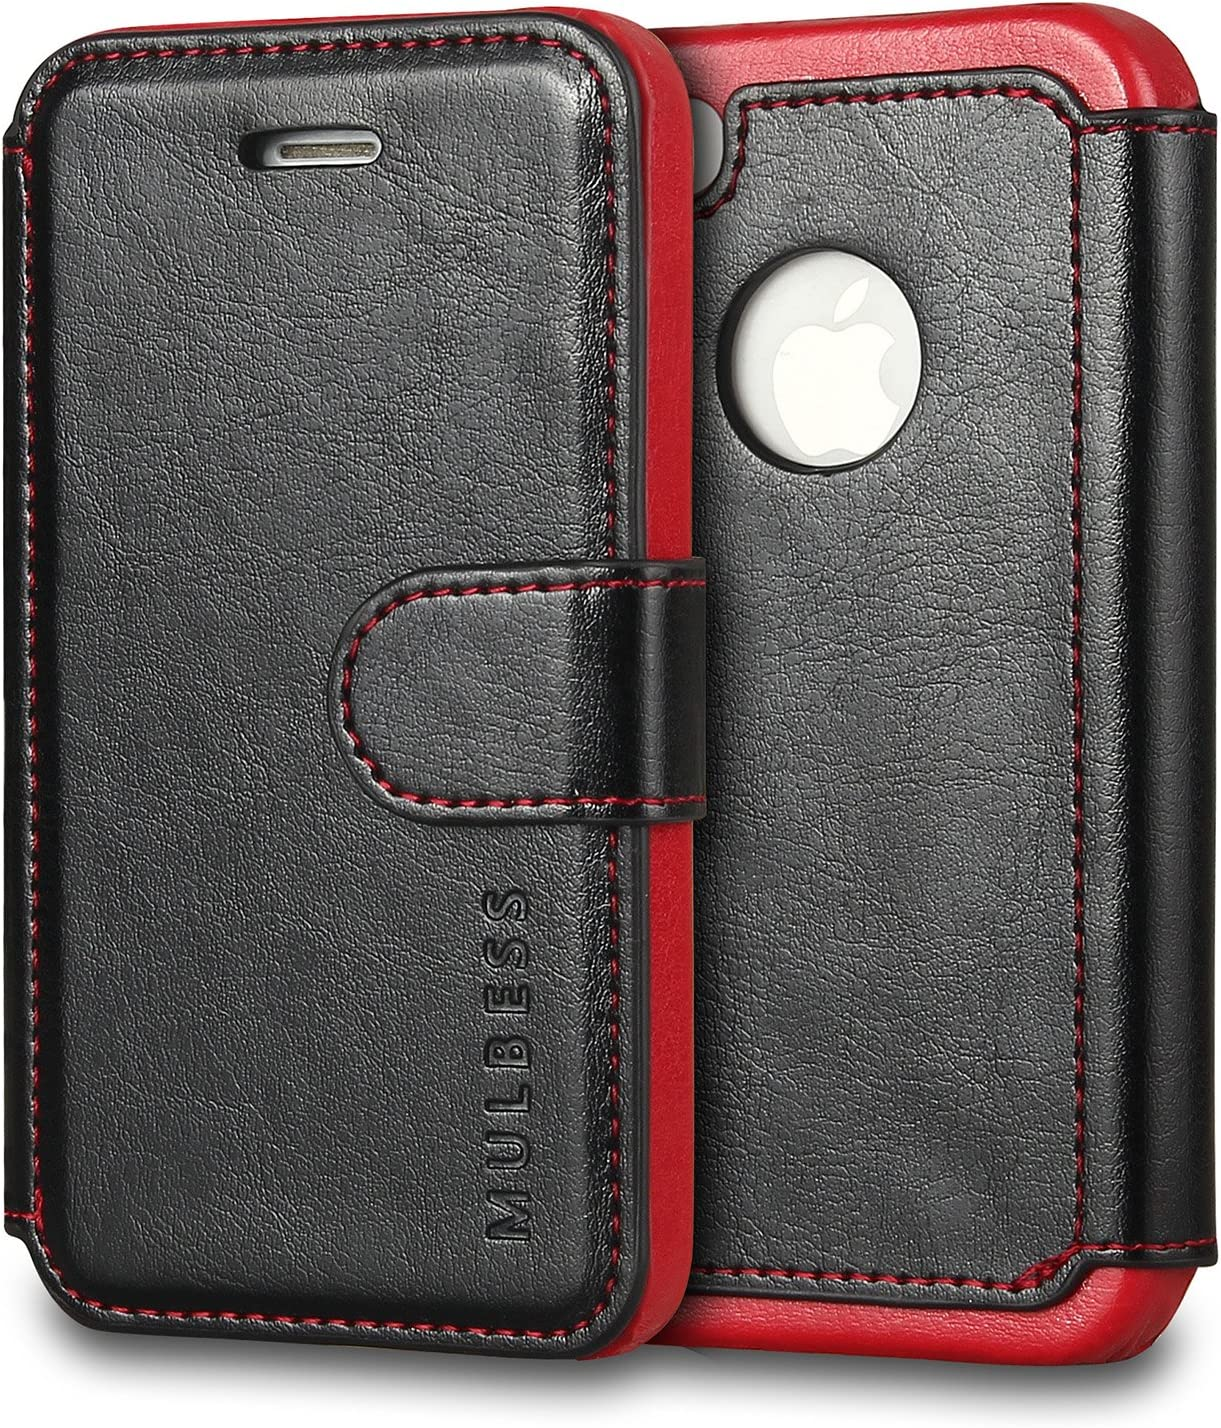 Mulbess Layered iPhone 4s Leather Case,Flip Phone Case Wallet with Magnetic Clasp for iPhone 4 / 4s Cover, Black